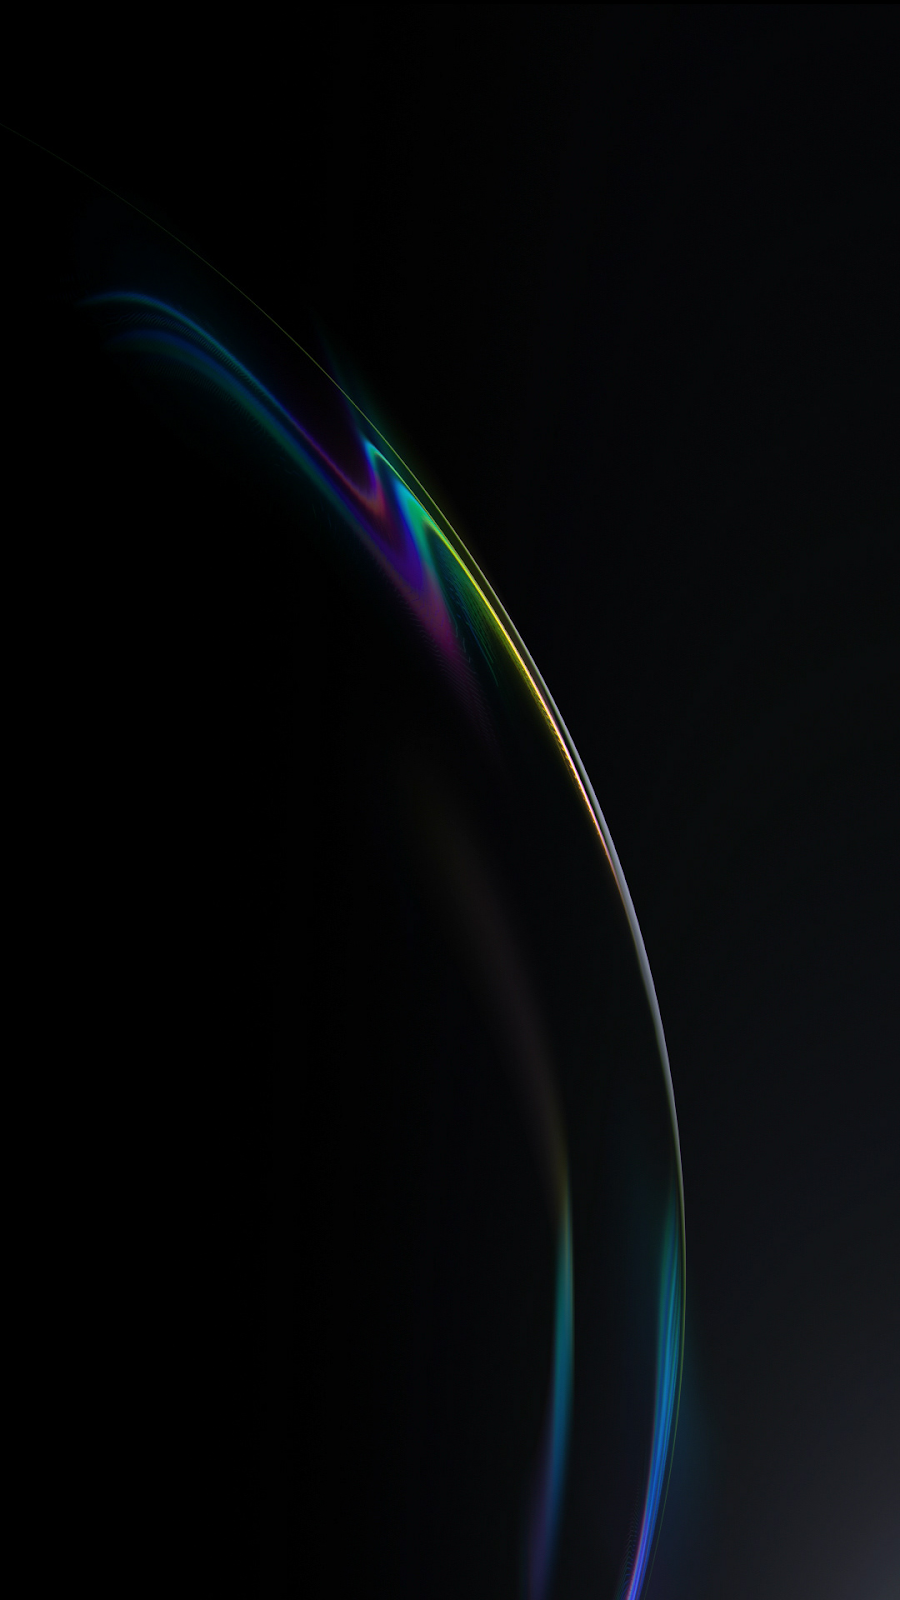 Abstract Amoled Wallpaper Hd Cool Wallpapers Heroscreencc